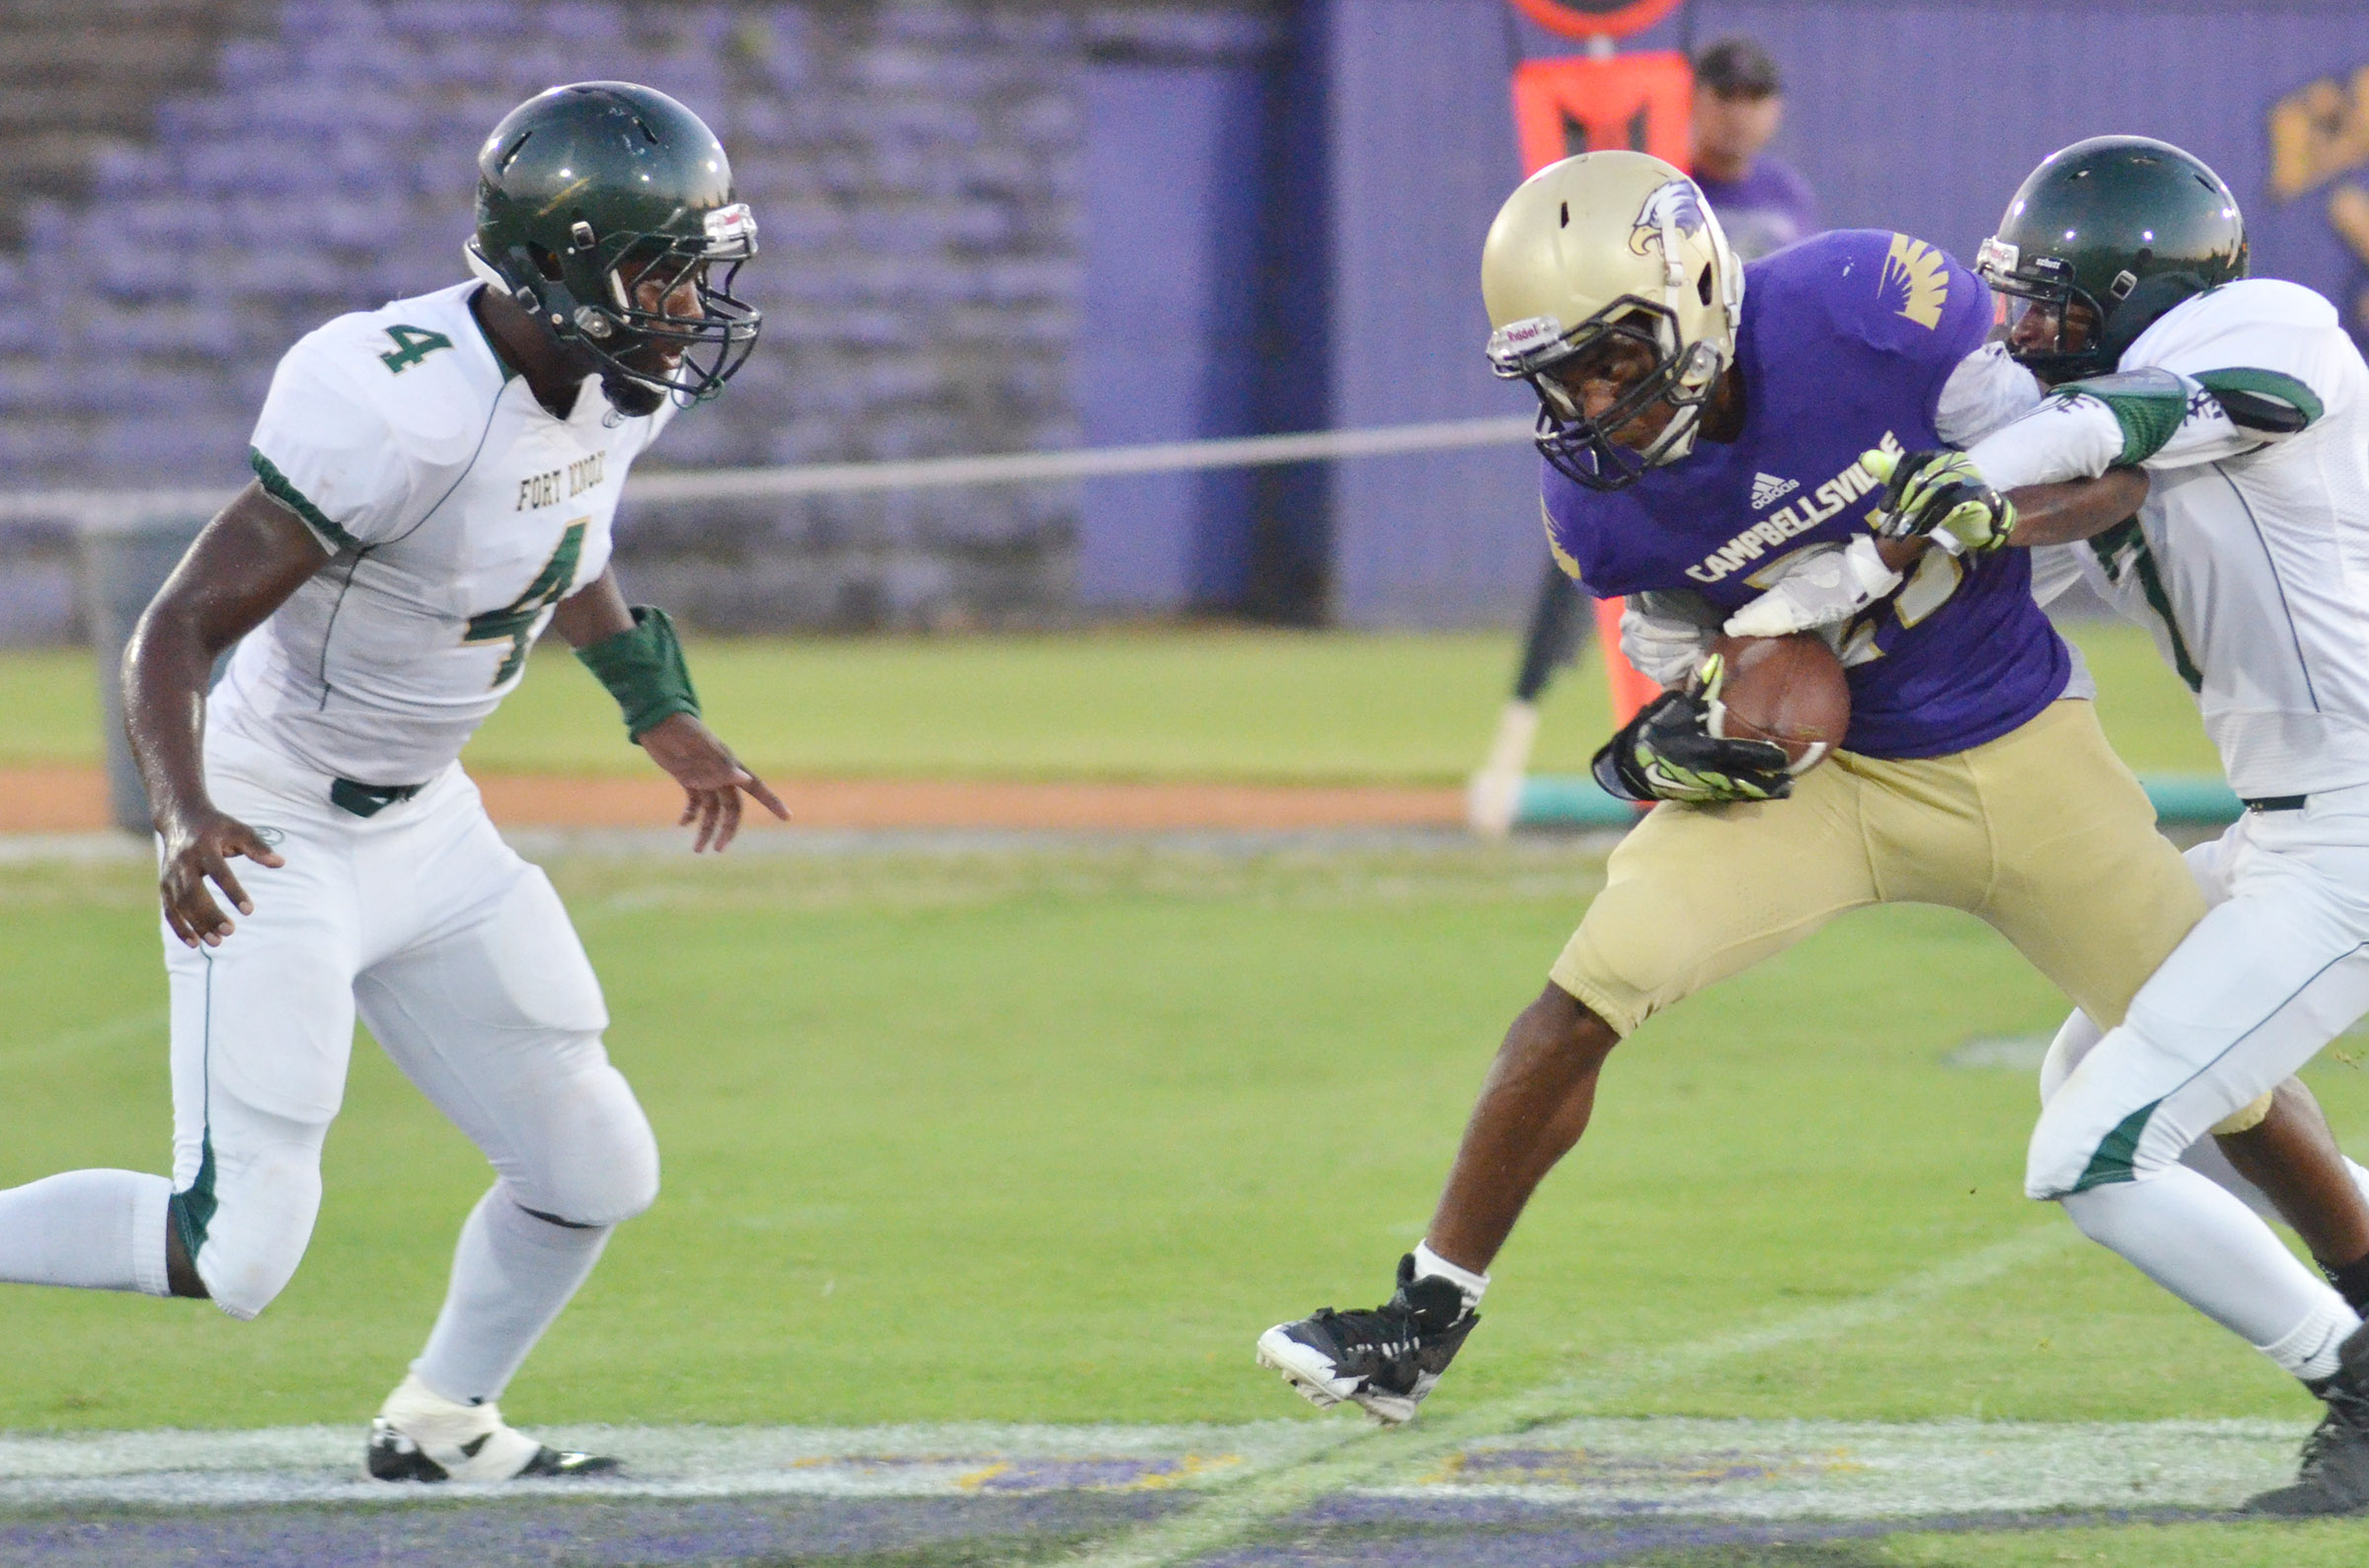 CHS senior Tyrion Taylor runs the ball.